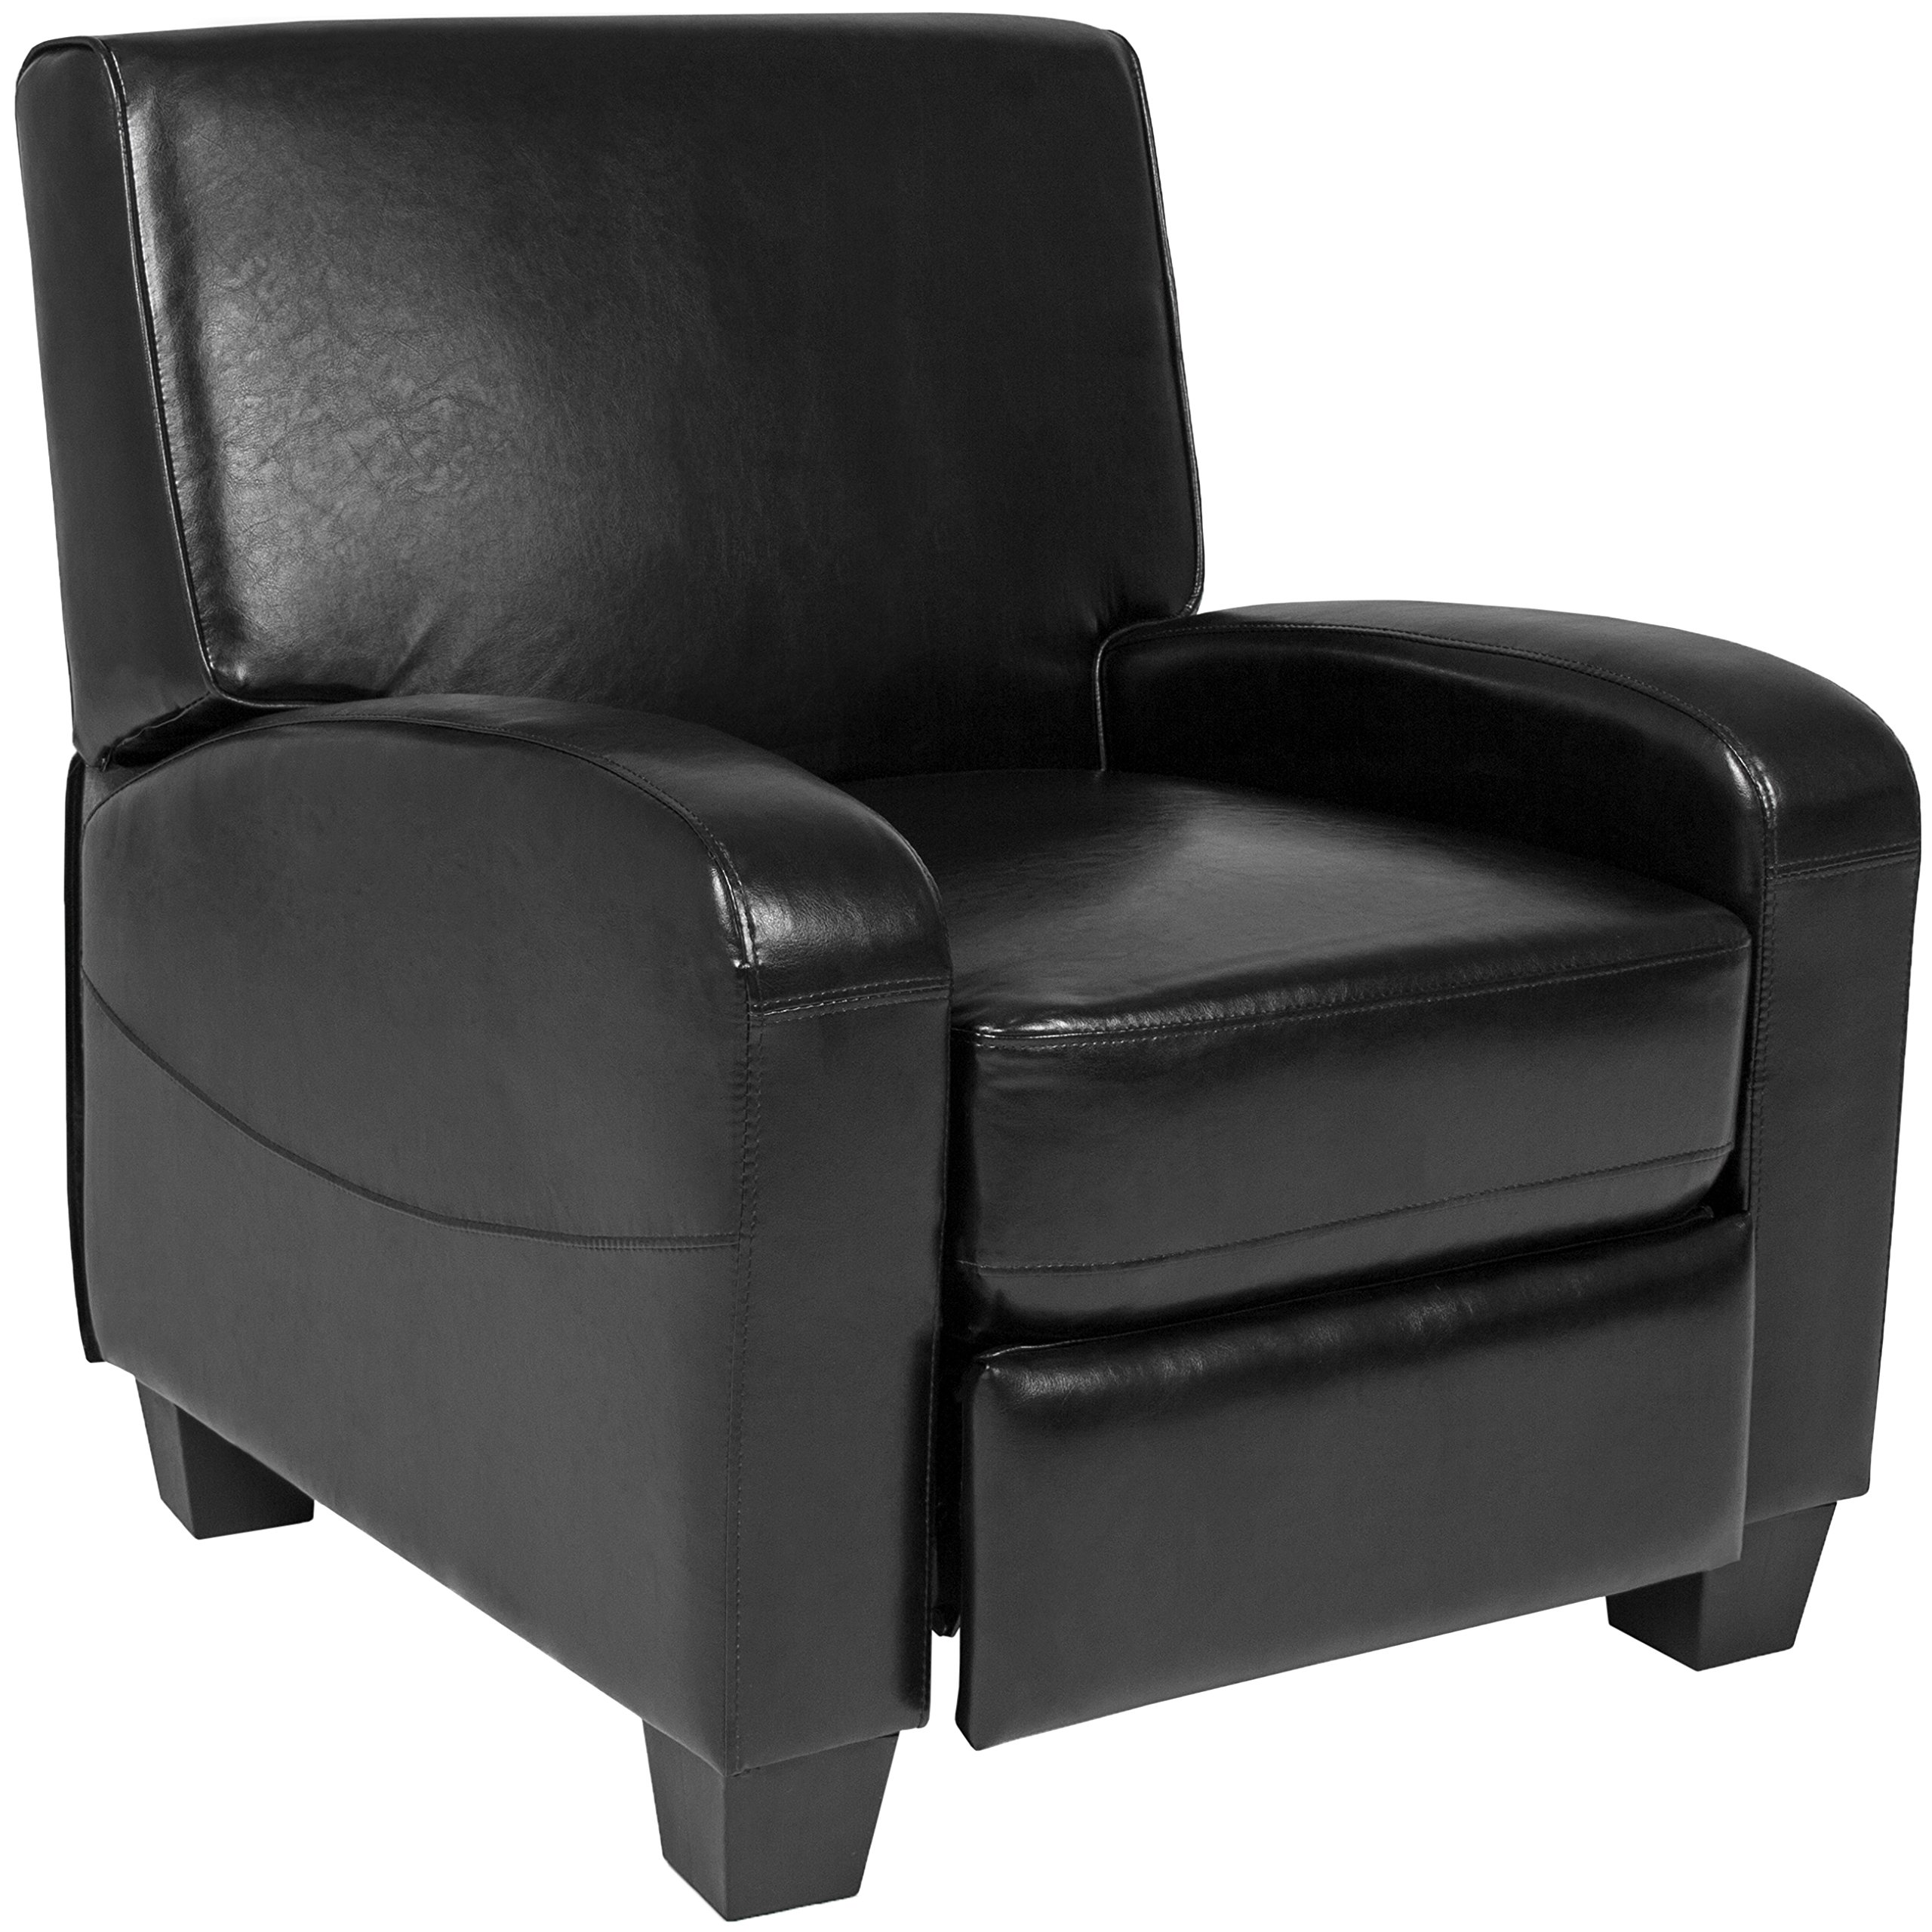 Best Choice Products Padded PU Leather Home Theater Recliner Chair